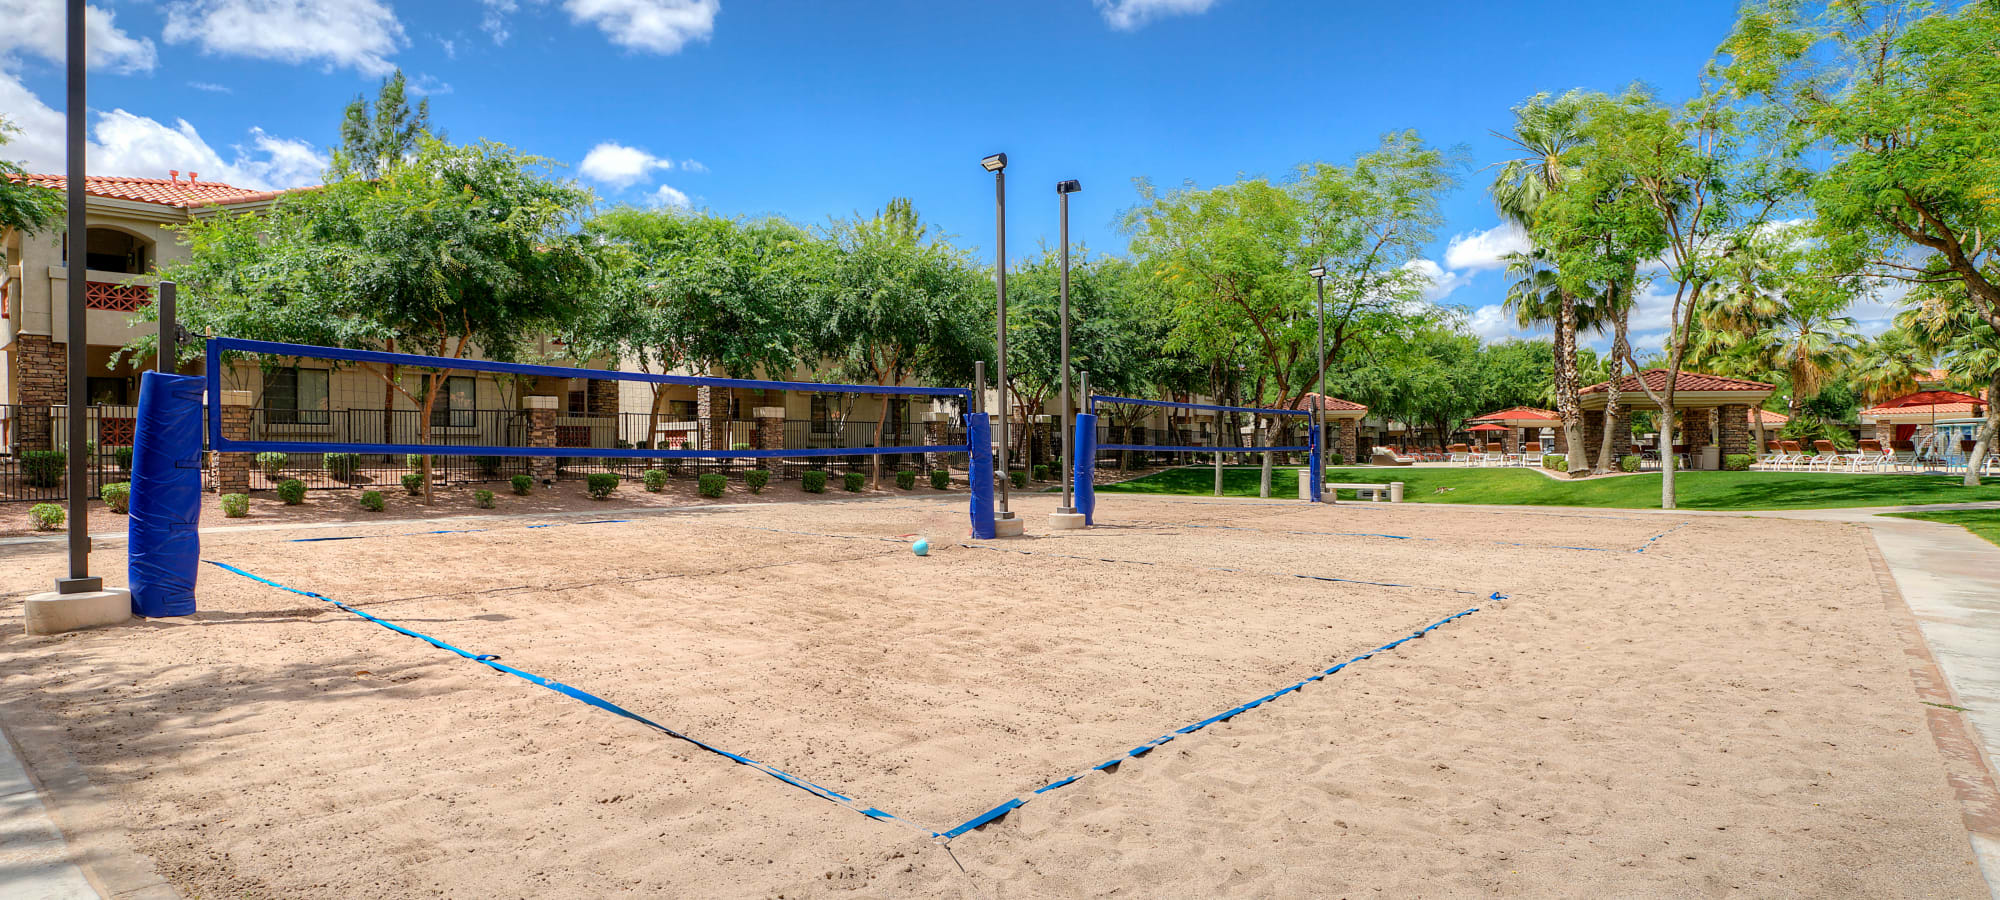 Sand volleyball court at San Palacio in Chandler, Arizona